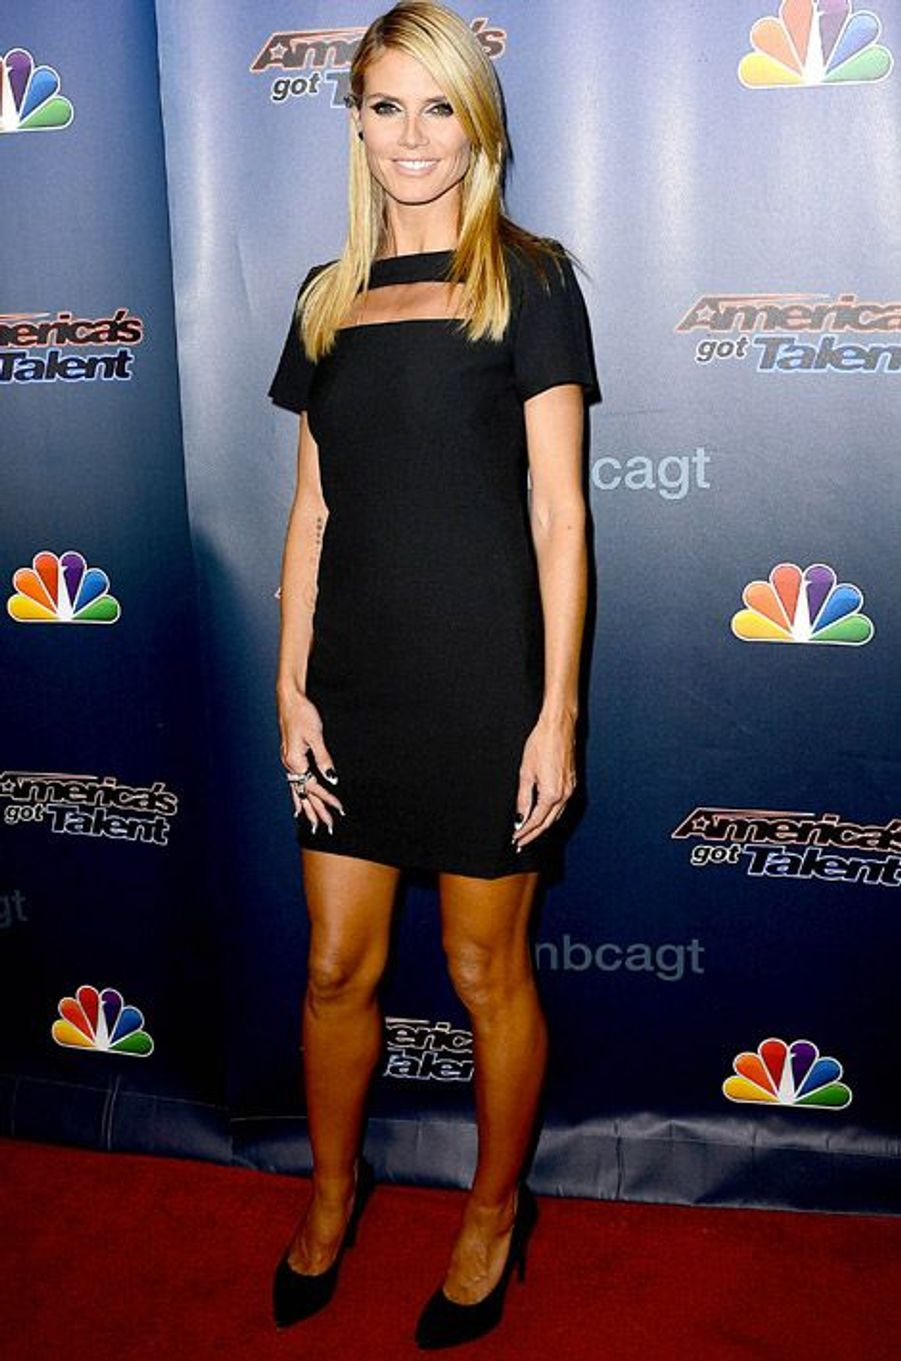 Le top Heidi Klum pour l'émission America's Got Talent à New York, le 10 septembre 2014